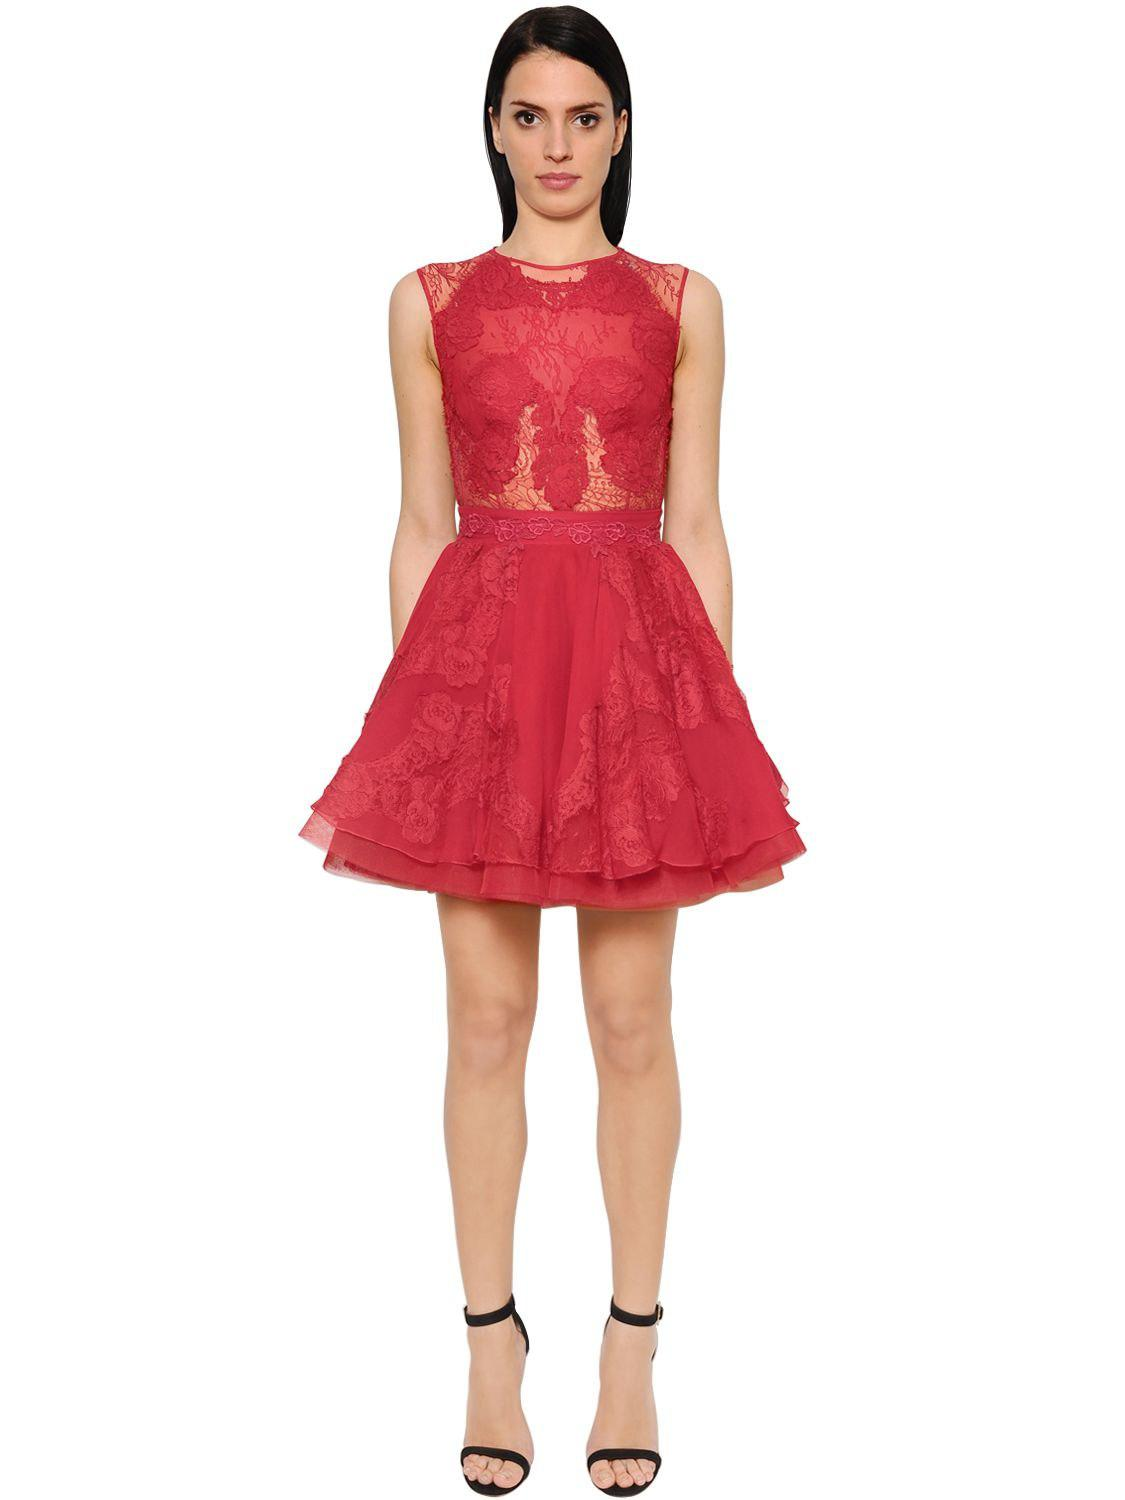 Lyst - Zuhair Murad Abito In Cady E Chiffon in Red